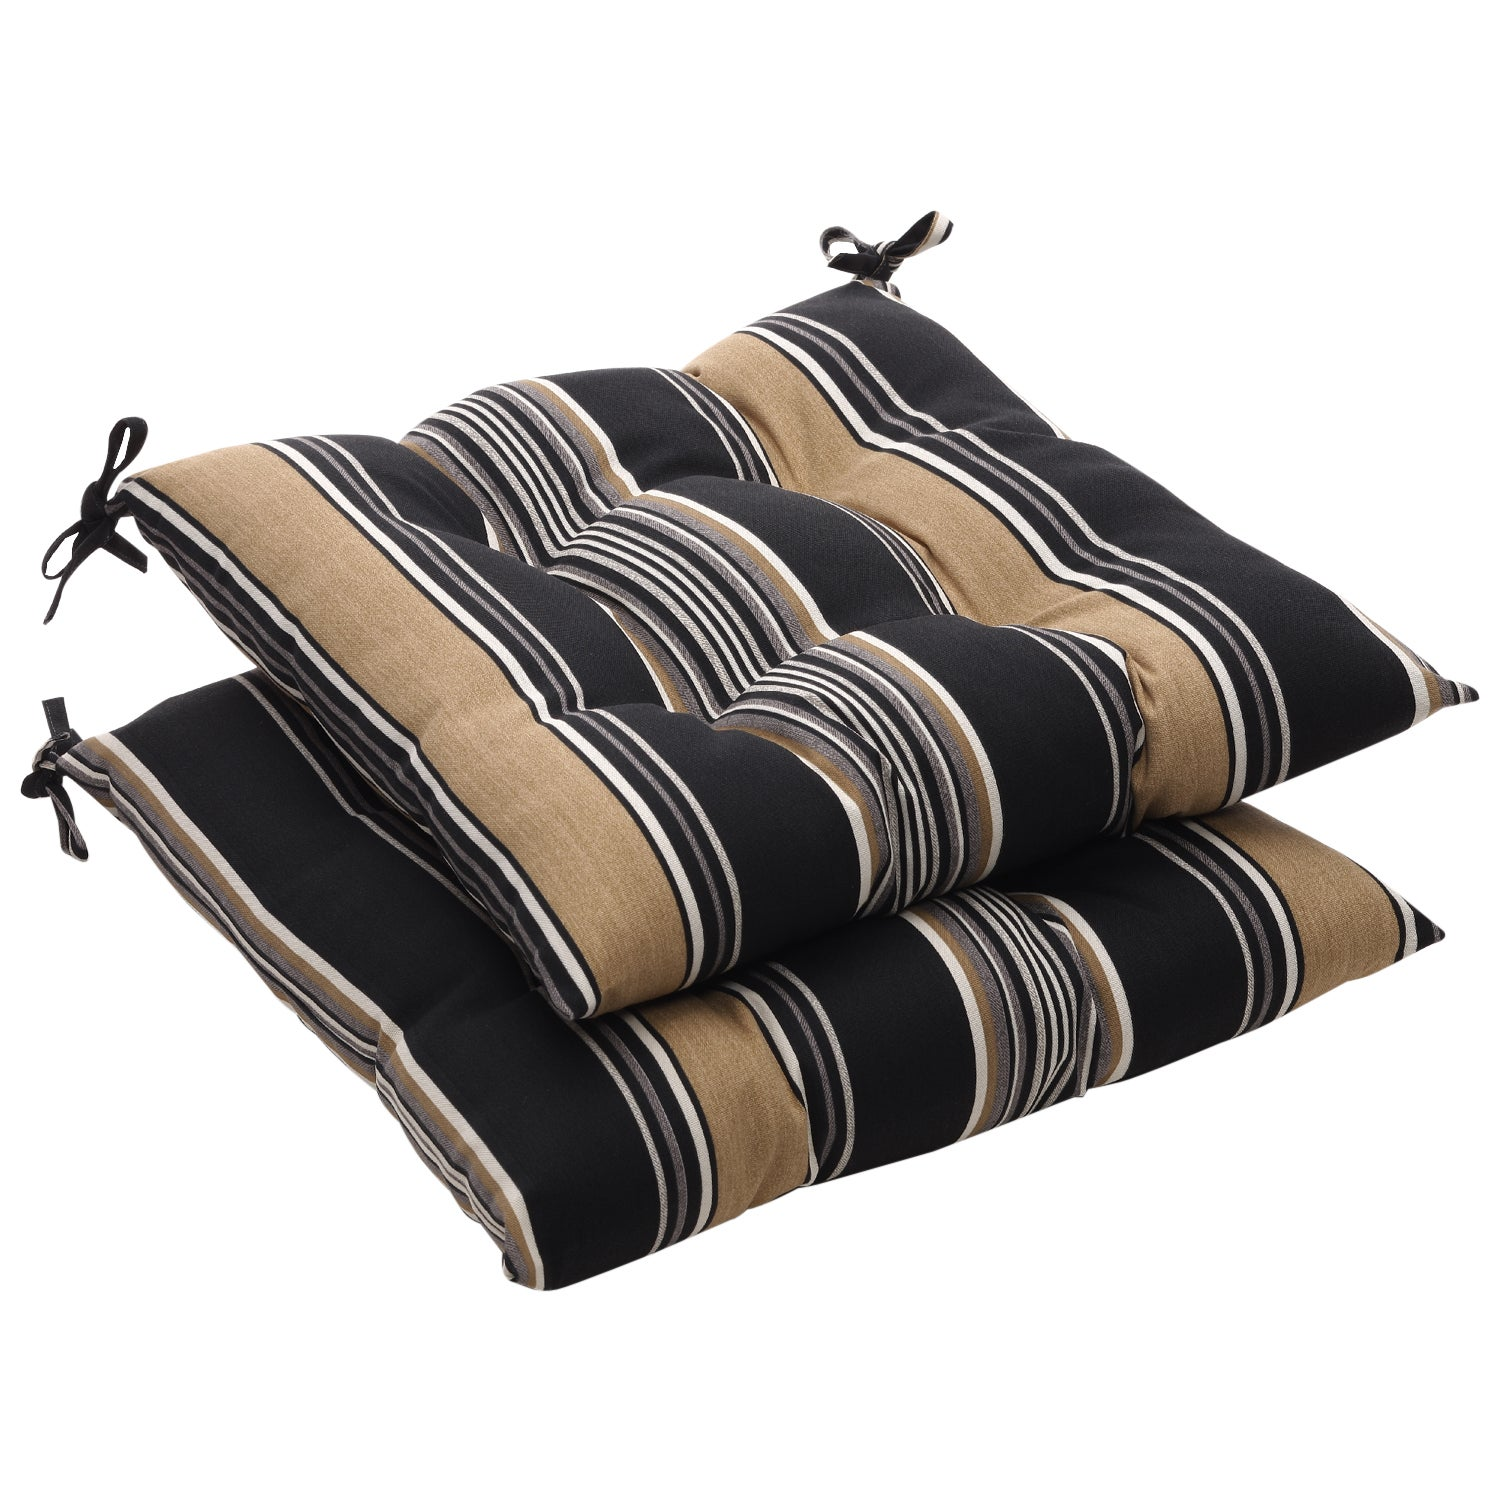 Black Tan Stripe Outdoor Tufted Seat Cushions Set of 2